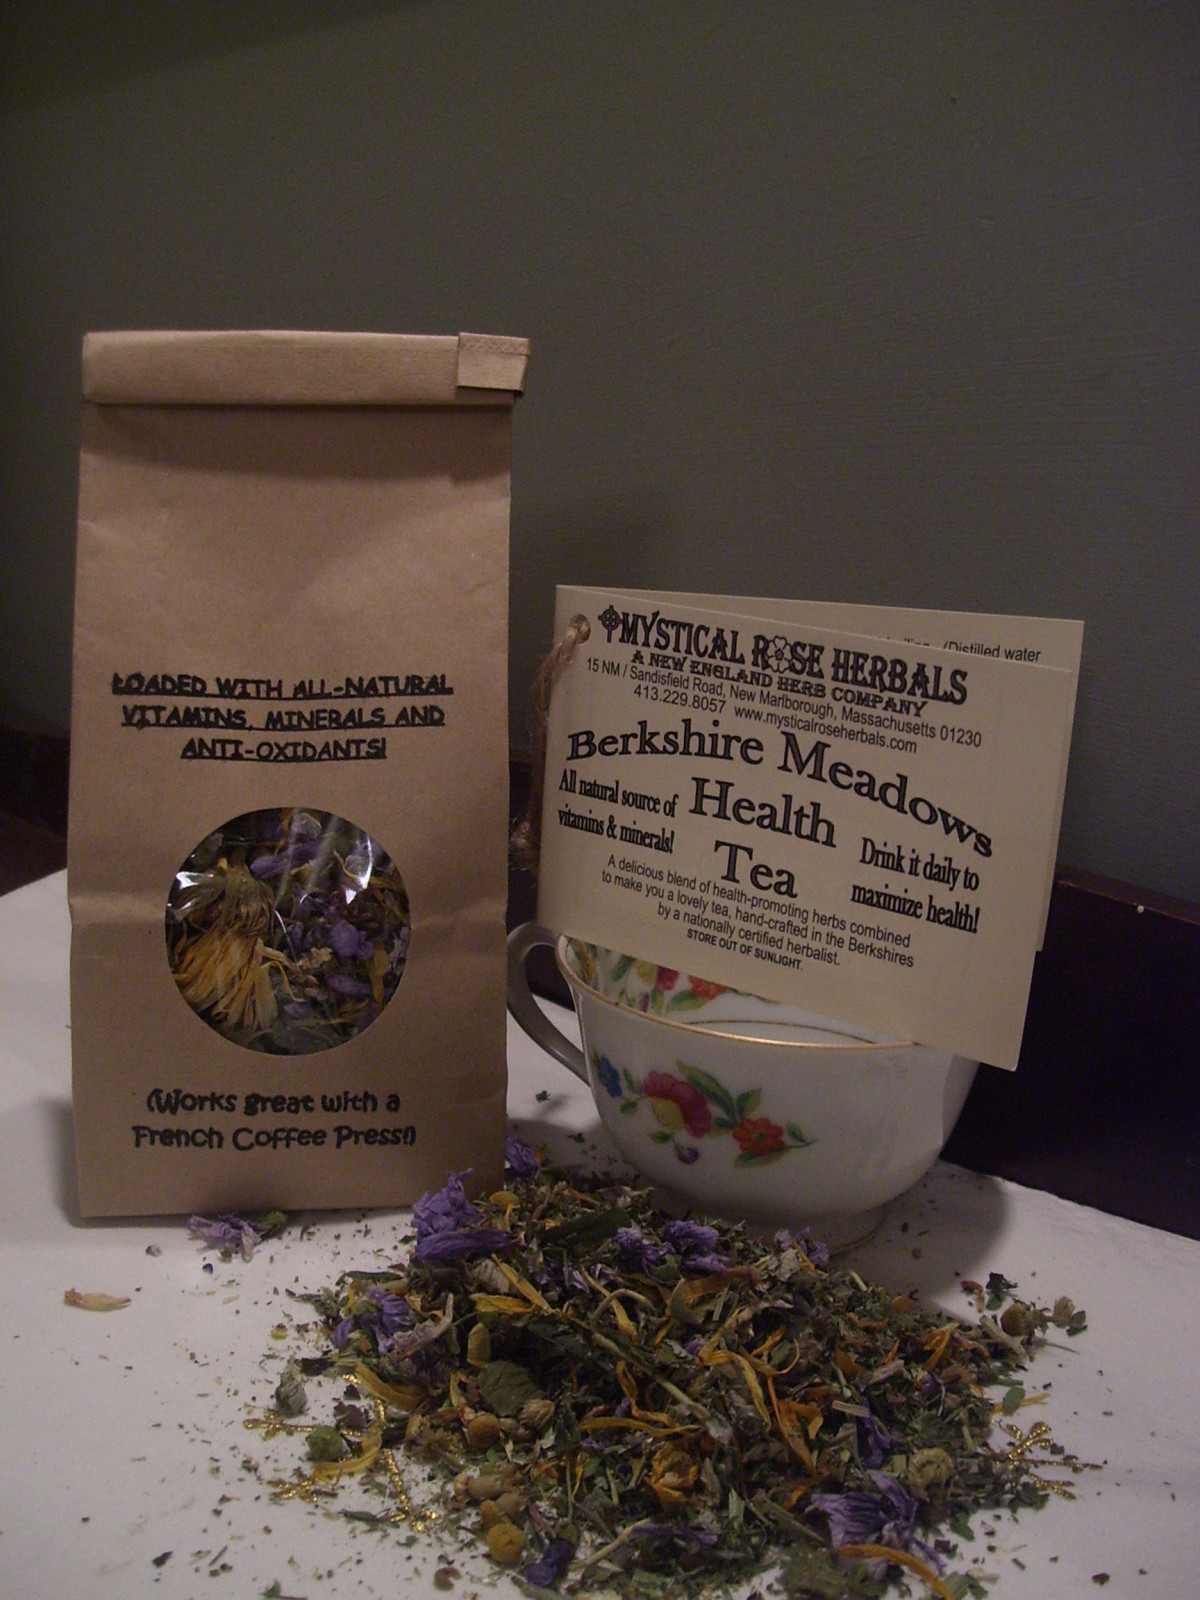 As a supplement to using supplements, BERKSHIRE MEADOWS HERBAL HEALTH TEA is an all-natural, food-source of Vitamins, Minerals and Anti-oxidants